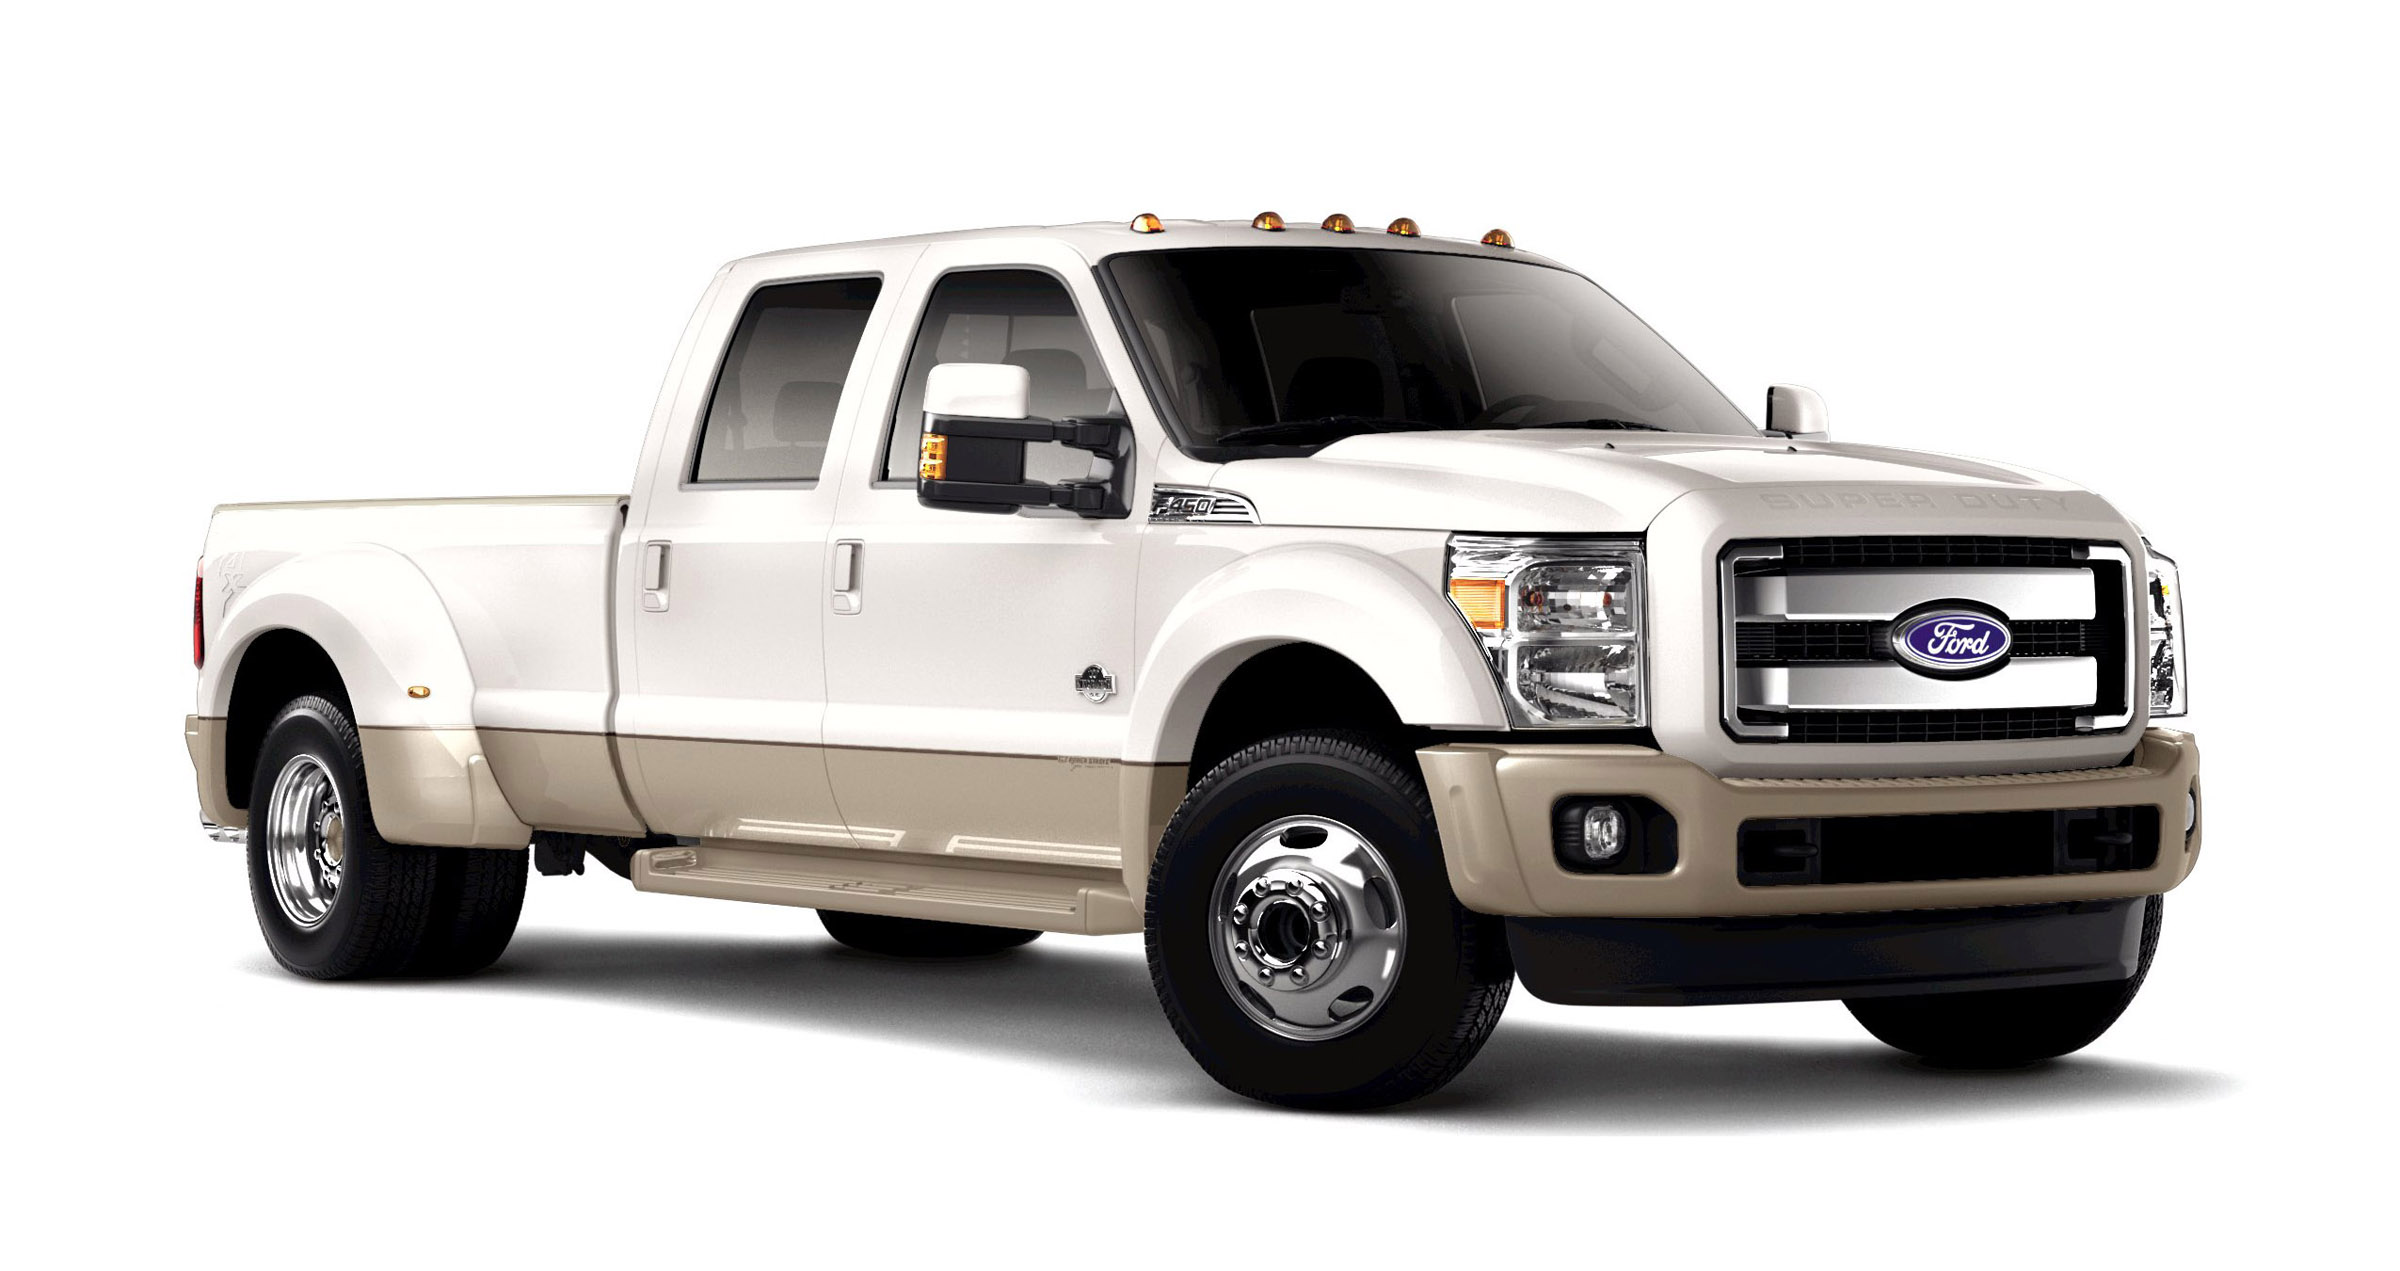 2010 Ford F-450 Super Duty #1